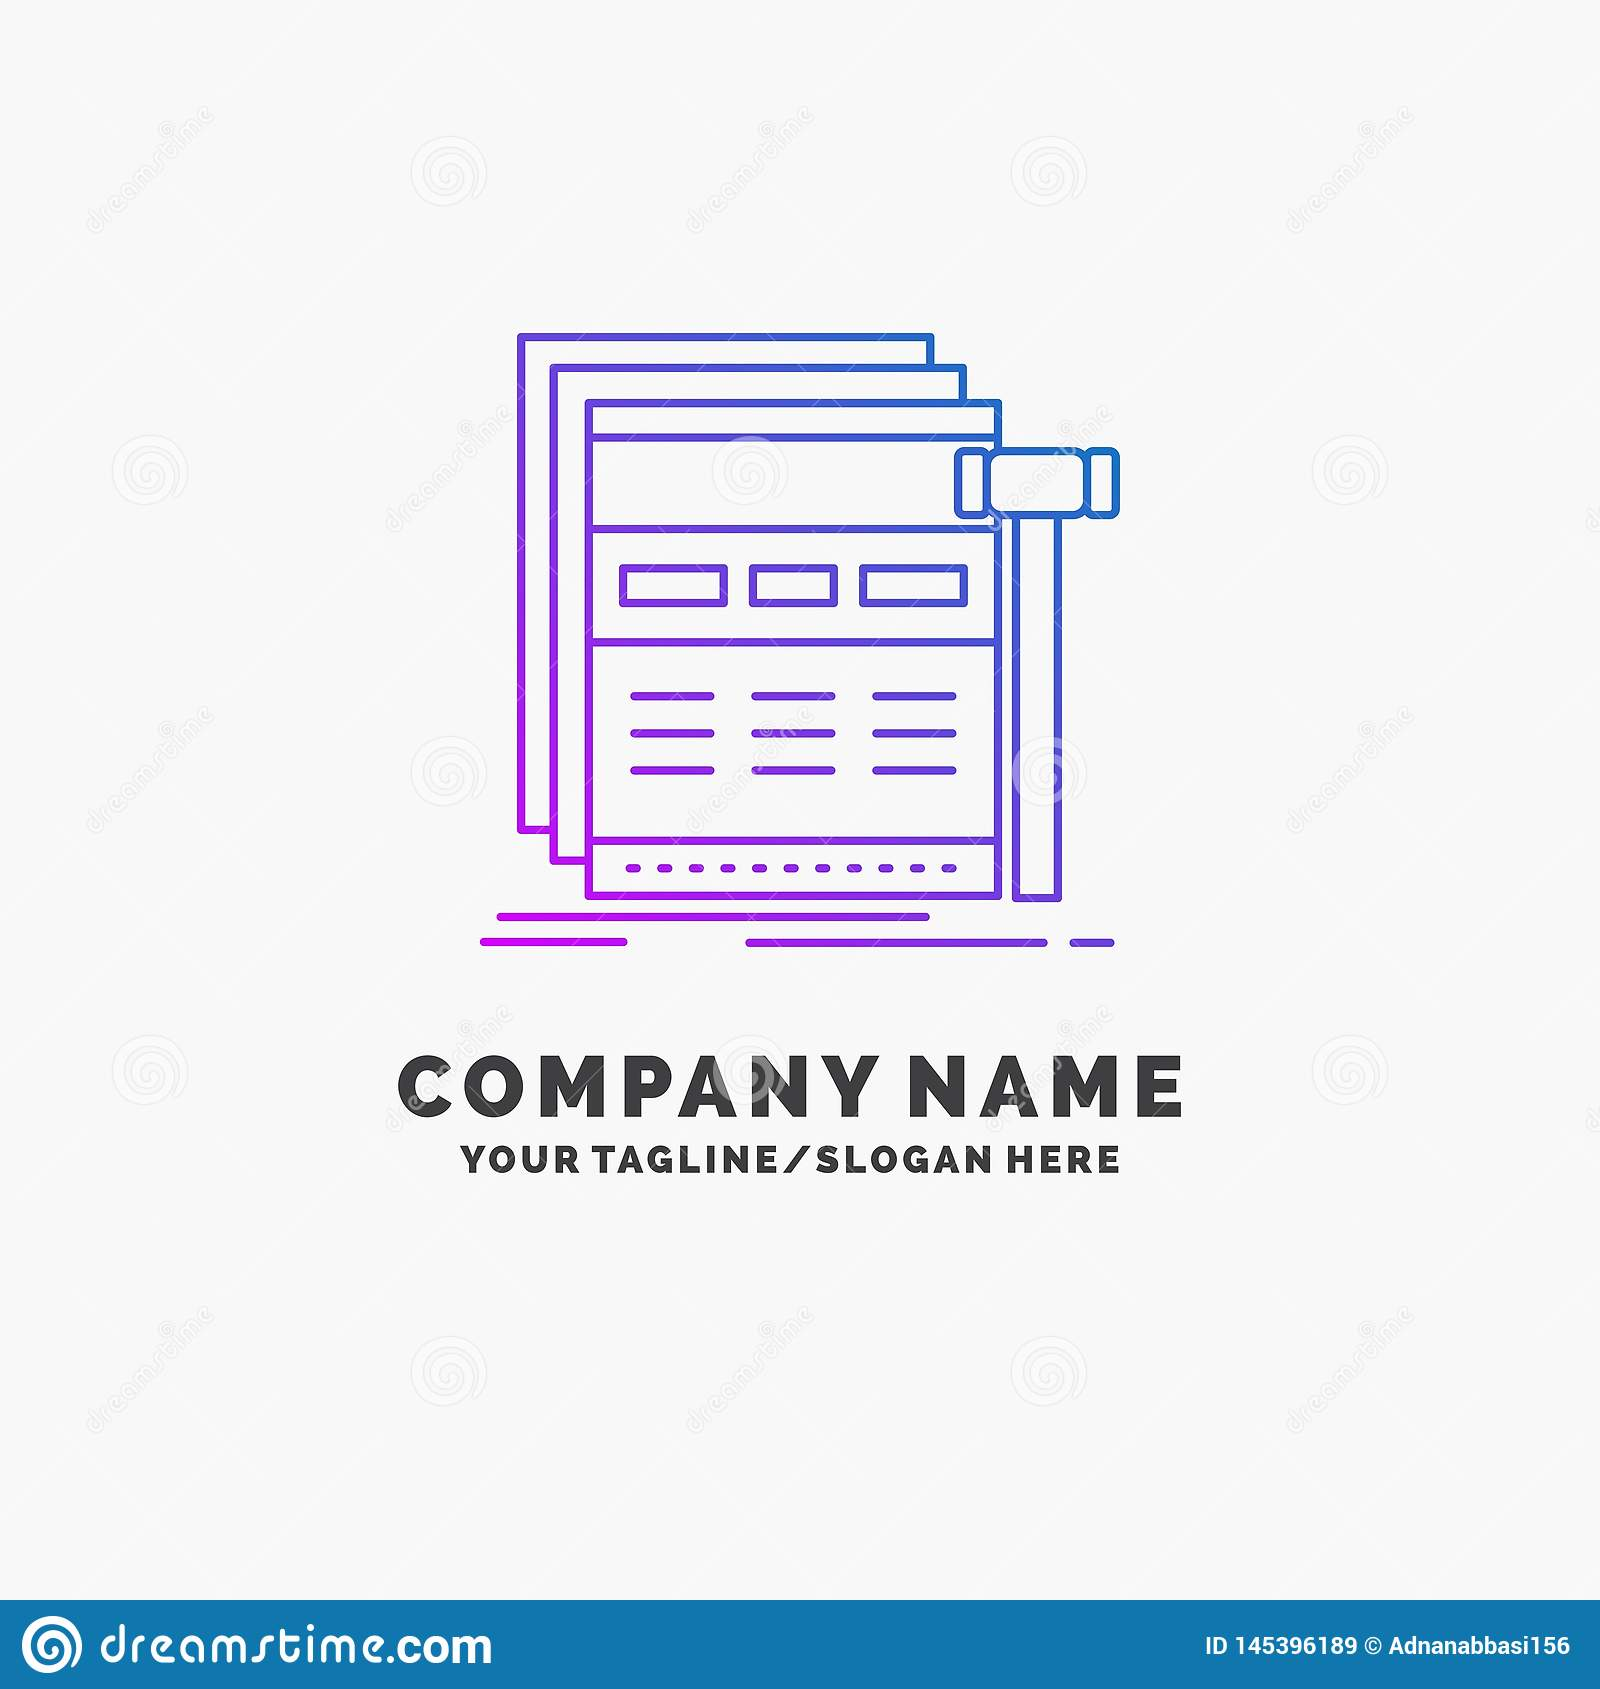 Internet, page, web, webpage, wireframe Purple Business Logo Template. Place for Tagline